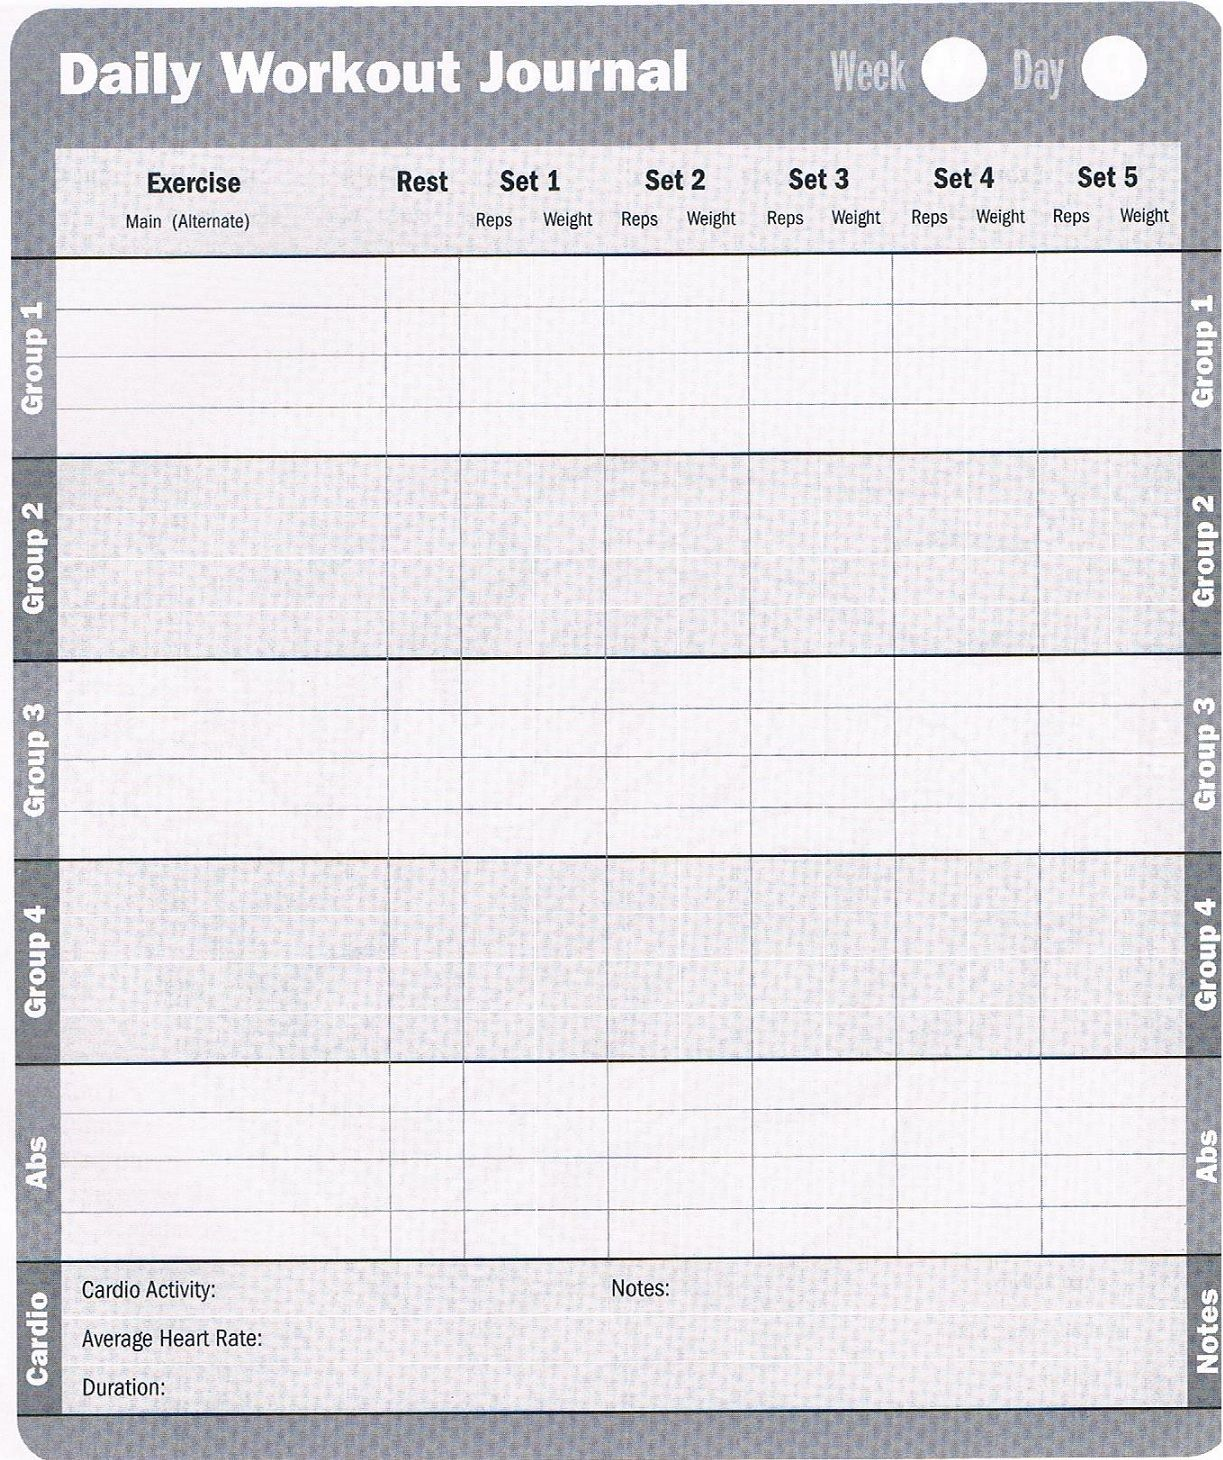 Workout Log Download these free printable workout logs to